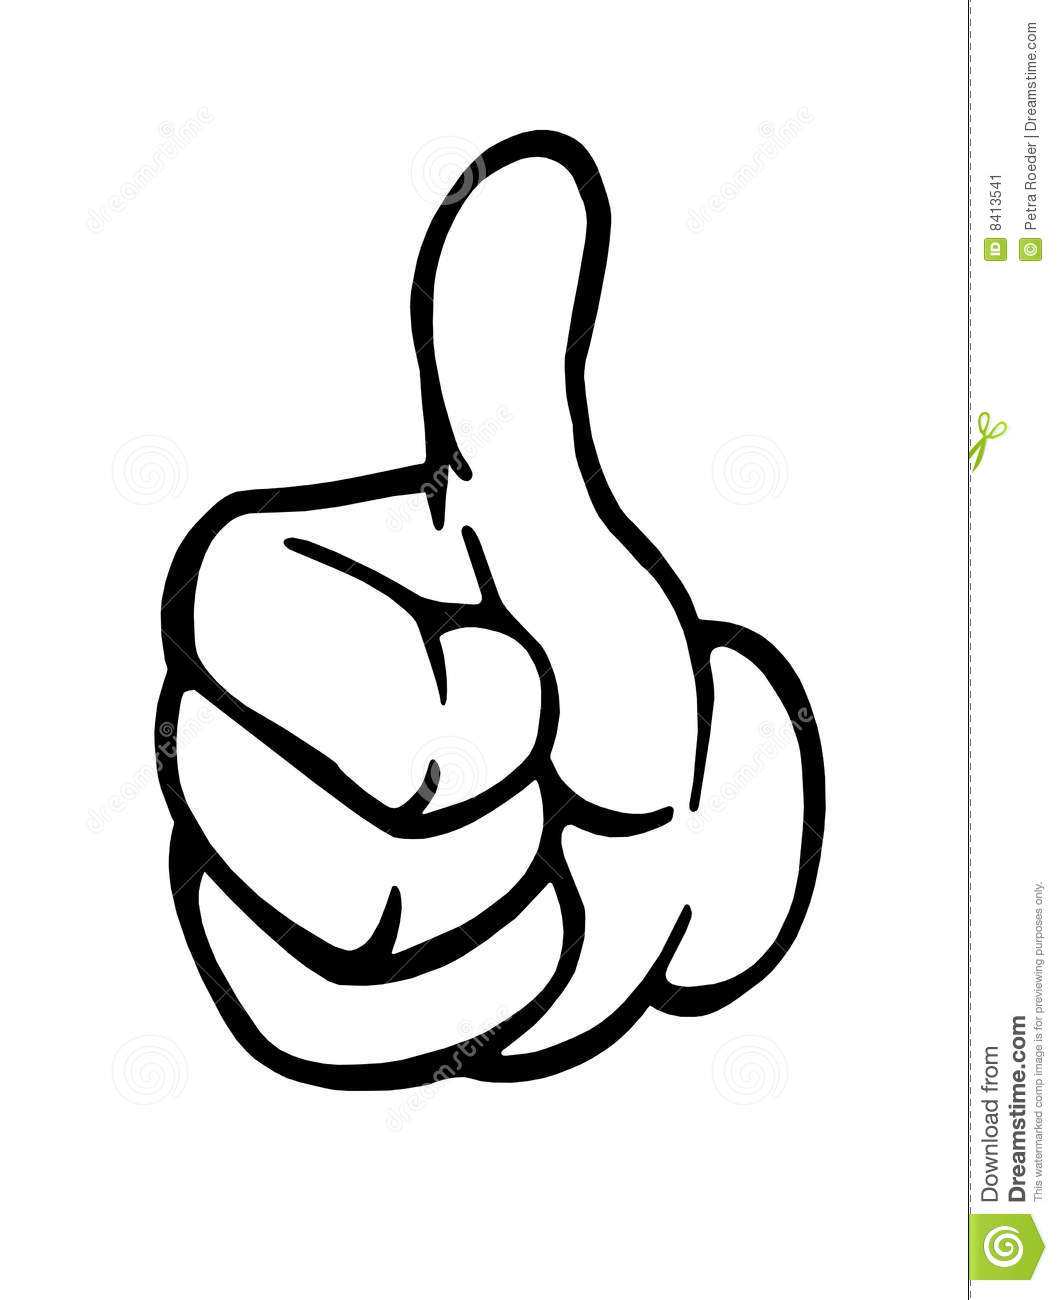 thumbs up sign stock vector. illustration of success, over - 8413541